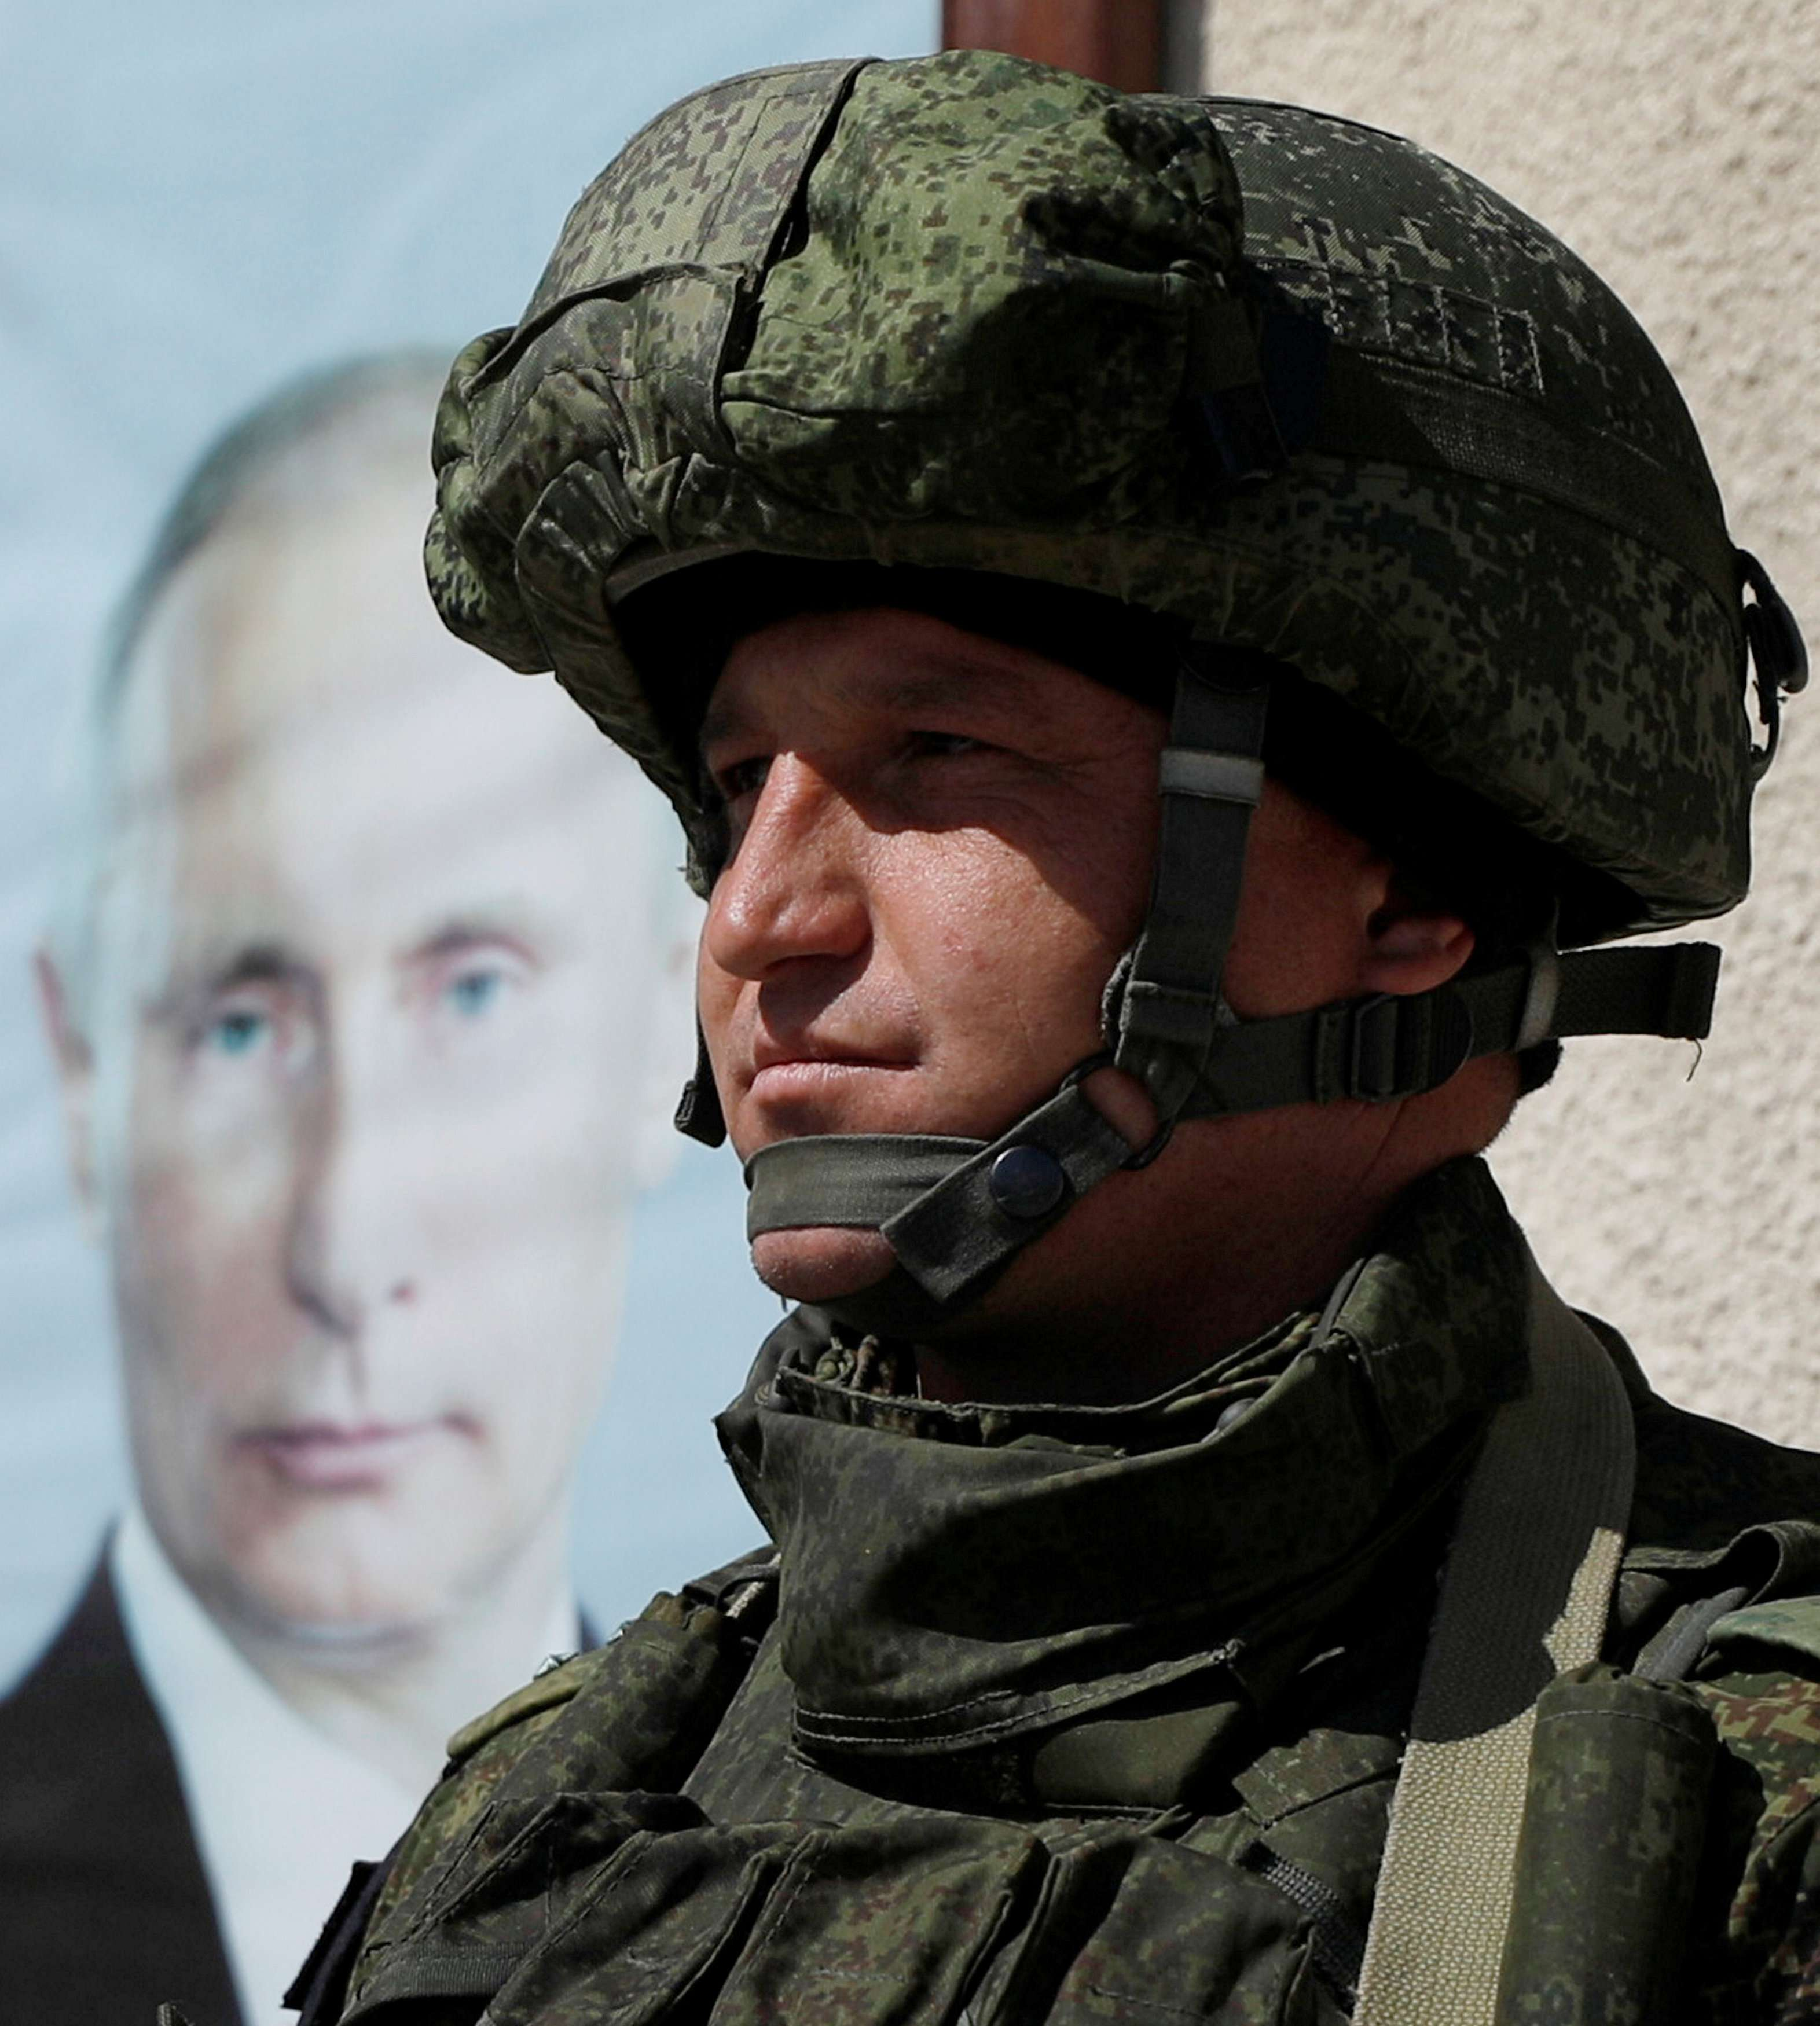 A Russian soldier stands near a poster of Russian President Vladimir Putin at Wafideen camp in Damascus, Syria, on March 2, 2018.  (Reuters)